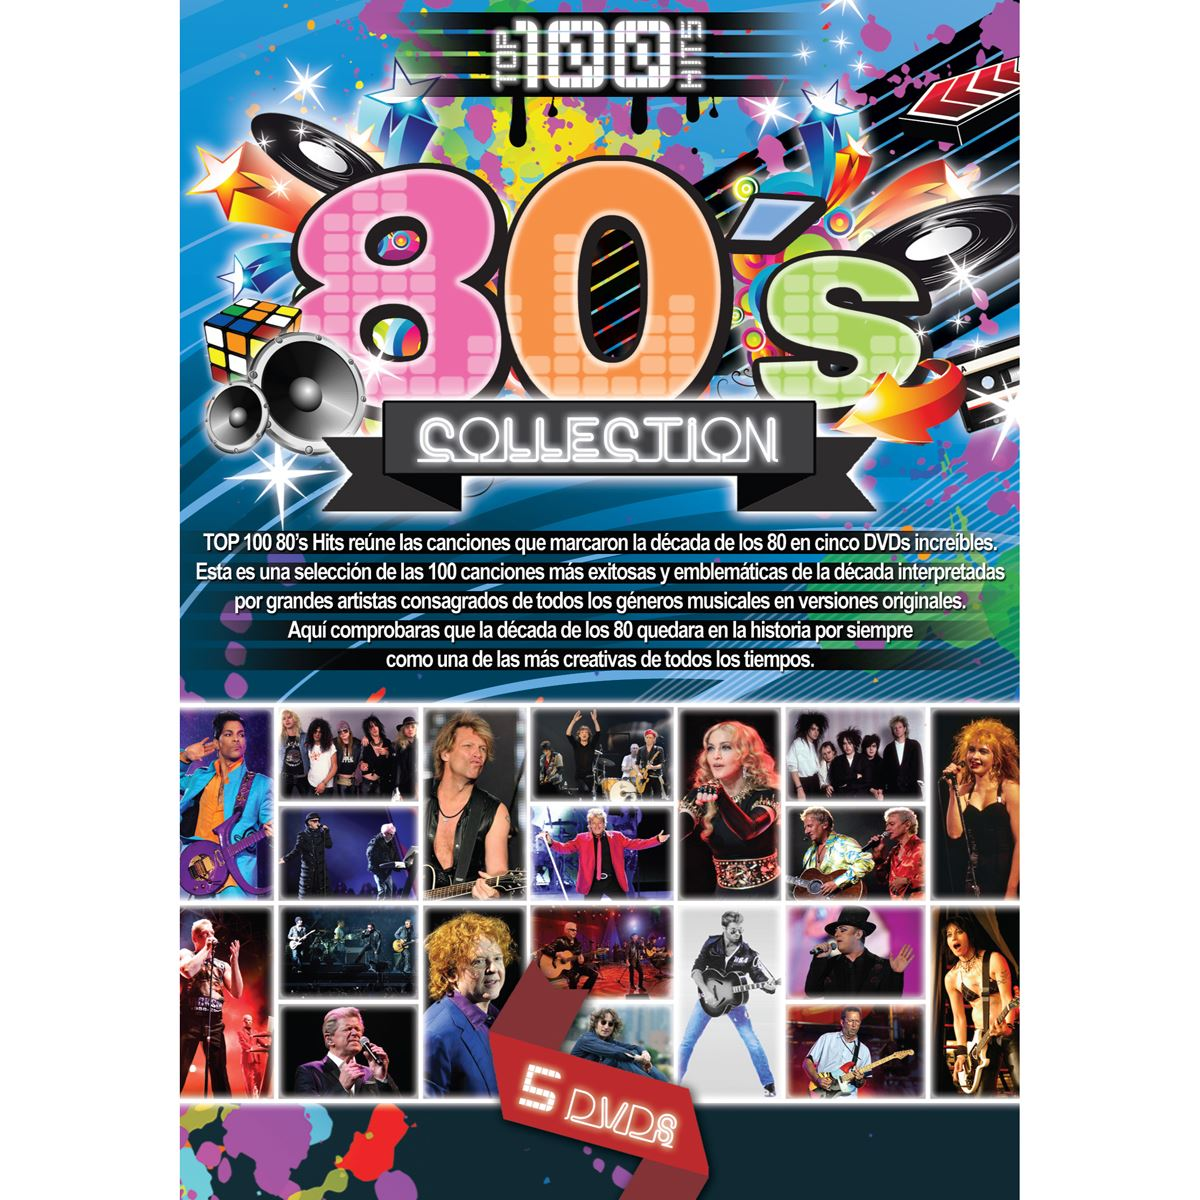 Dvd top 100 hits 80s collection  - Sanborns